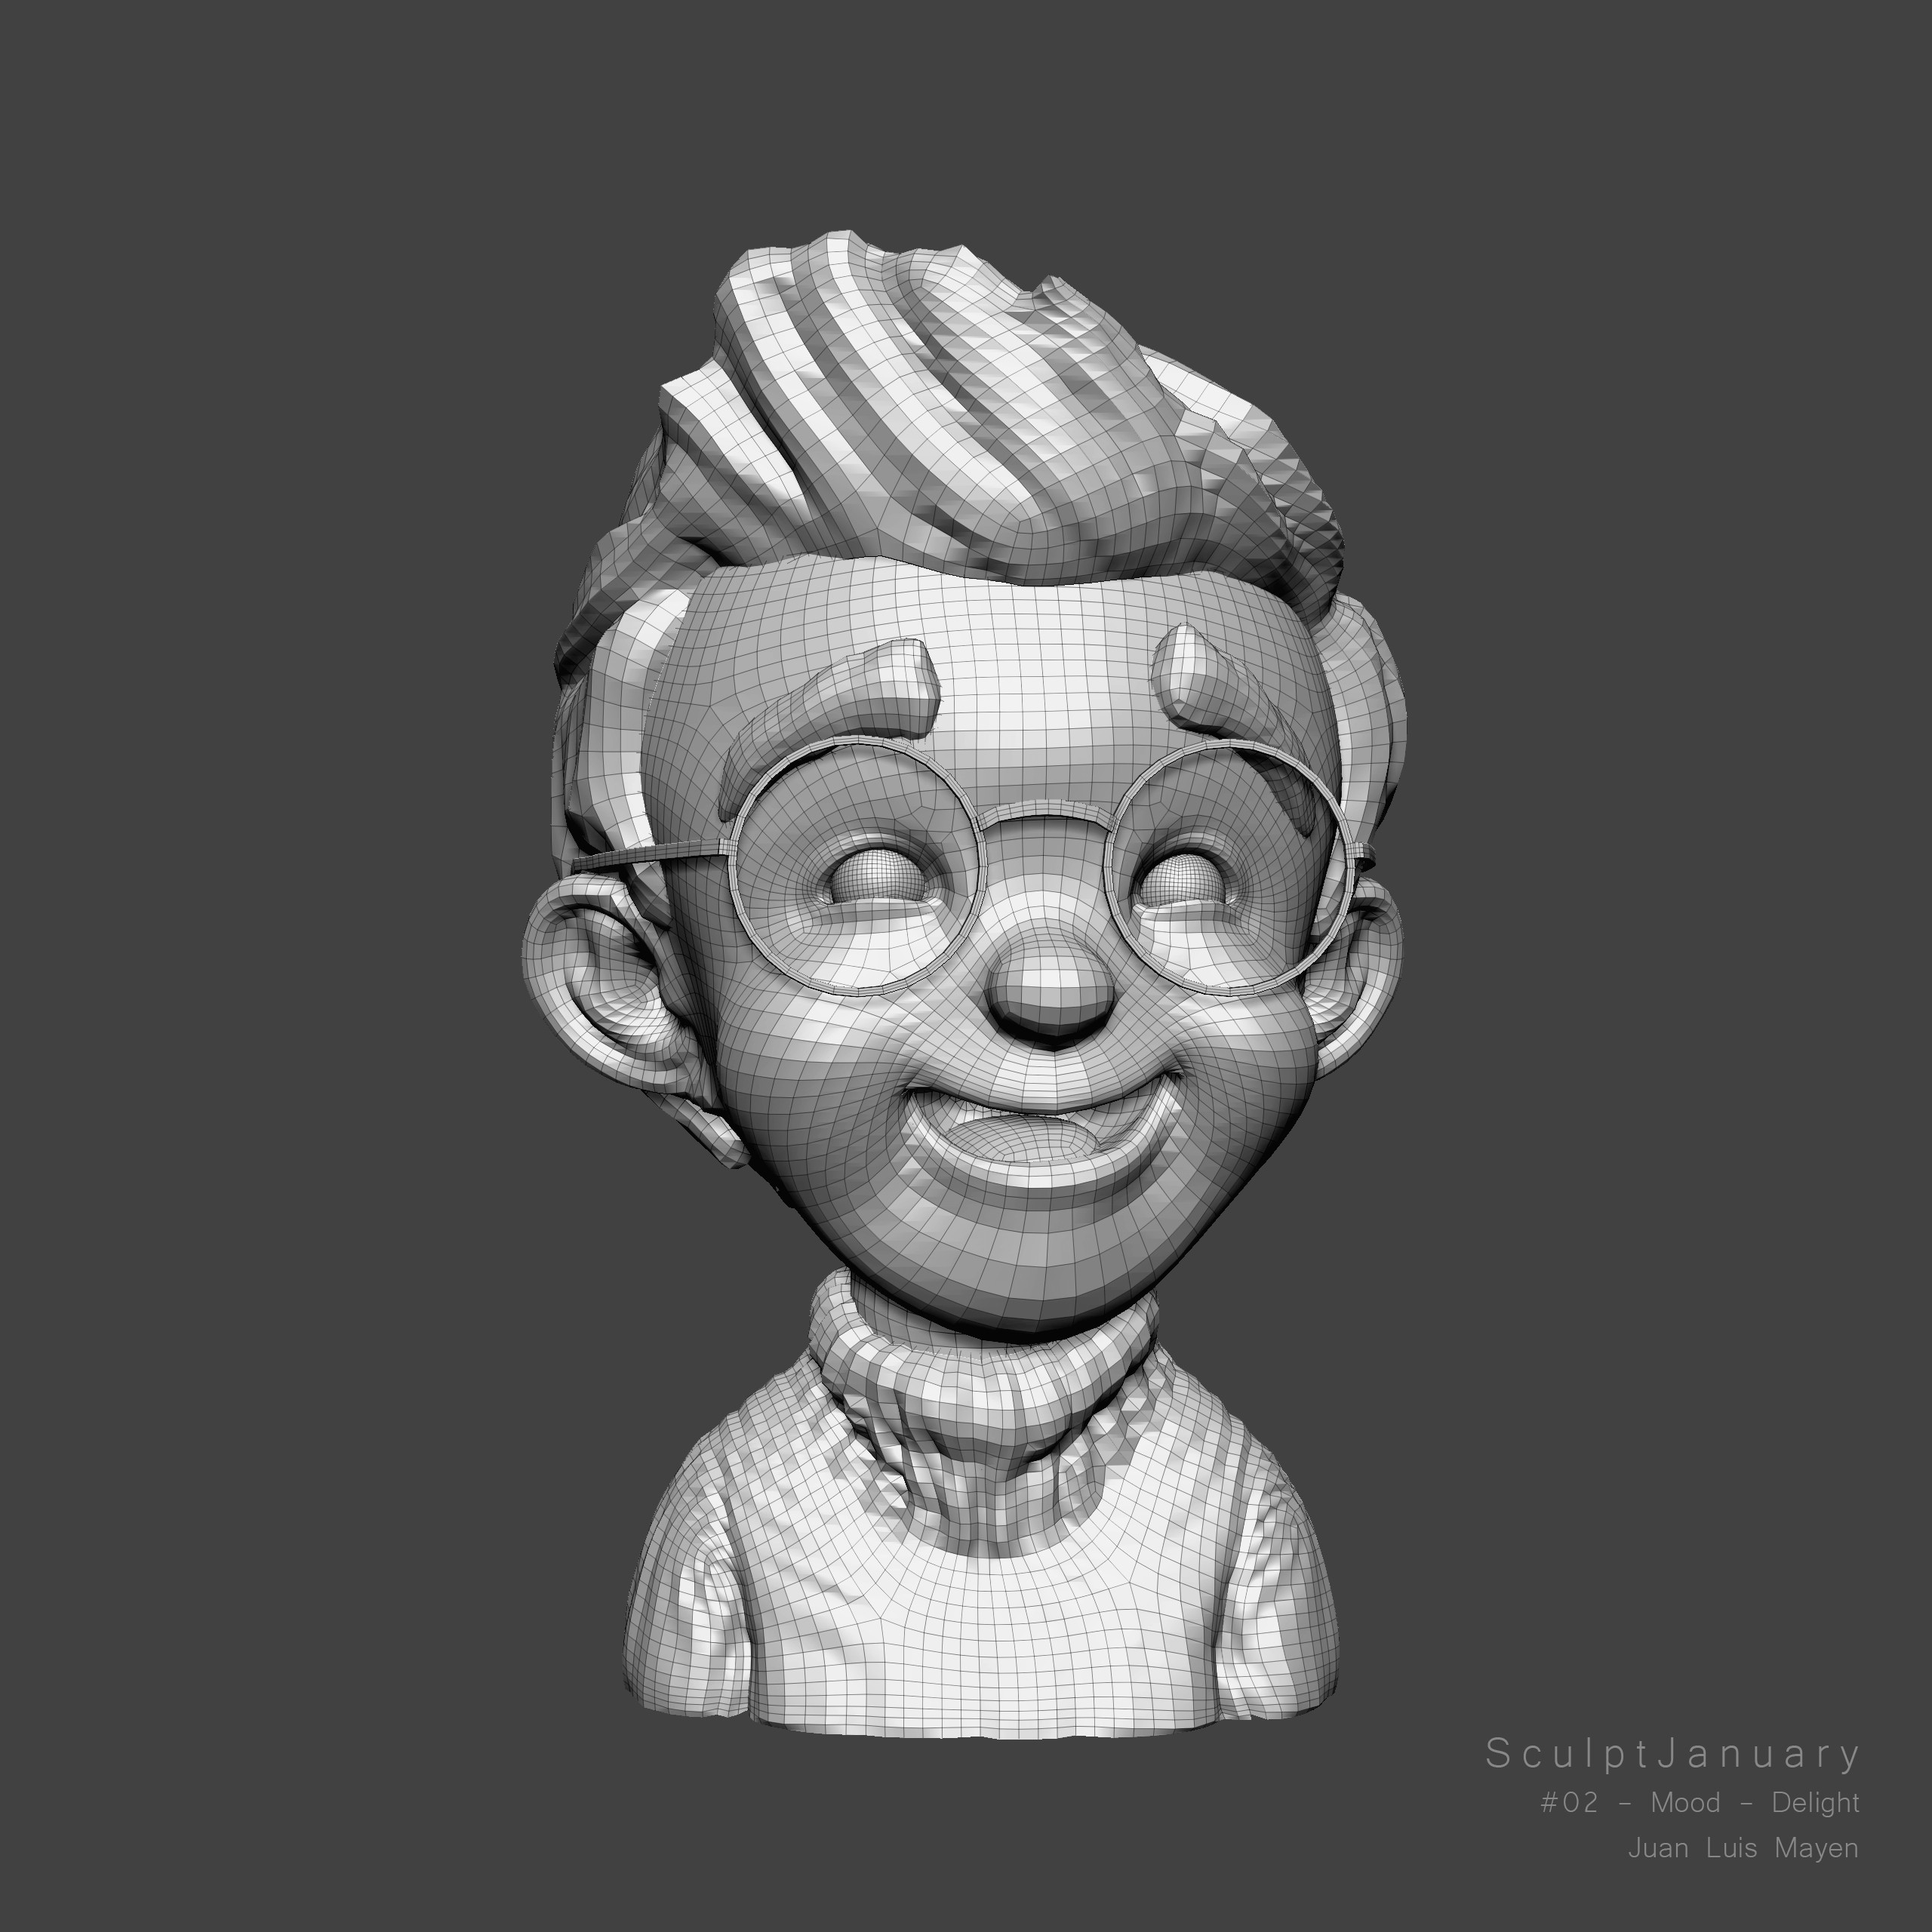 02 - Mood - Delight (Zbrush screenshot)